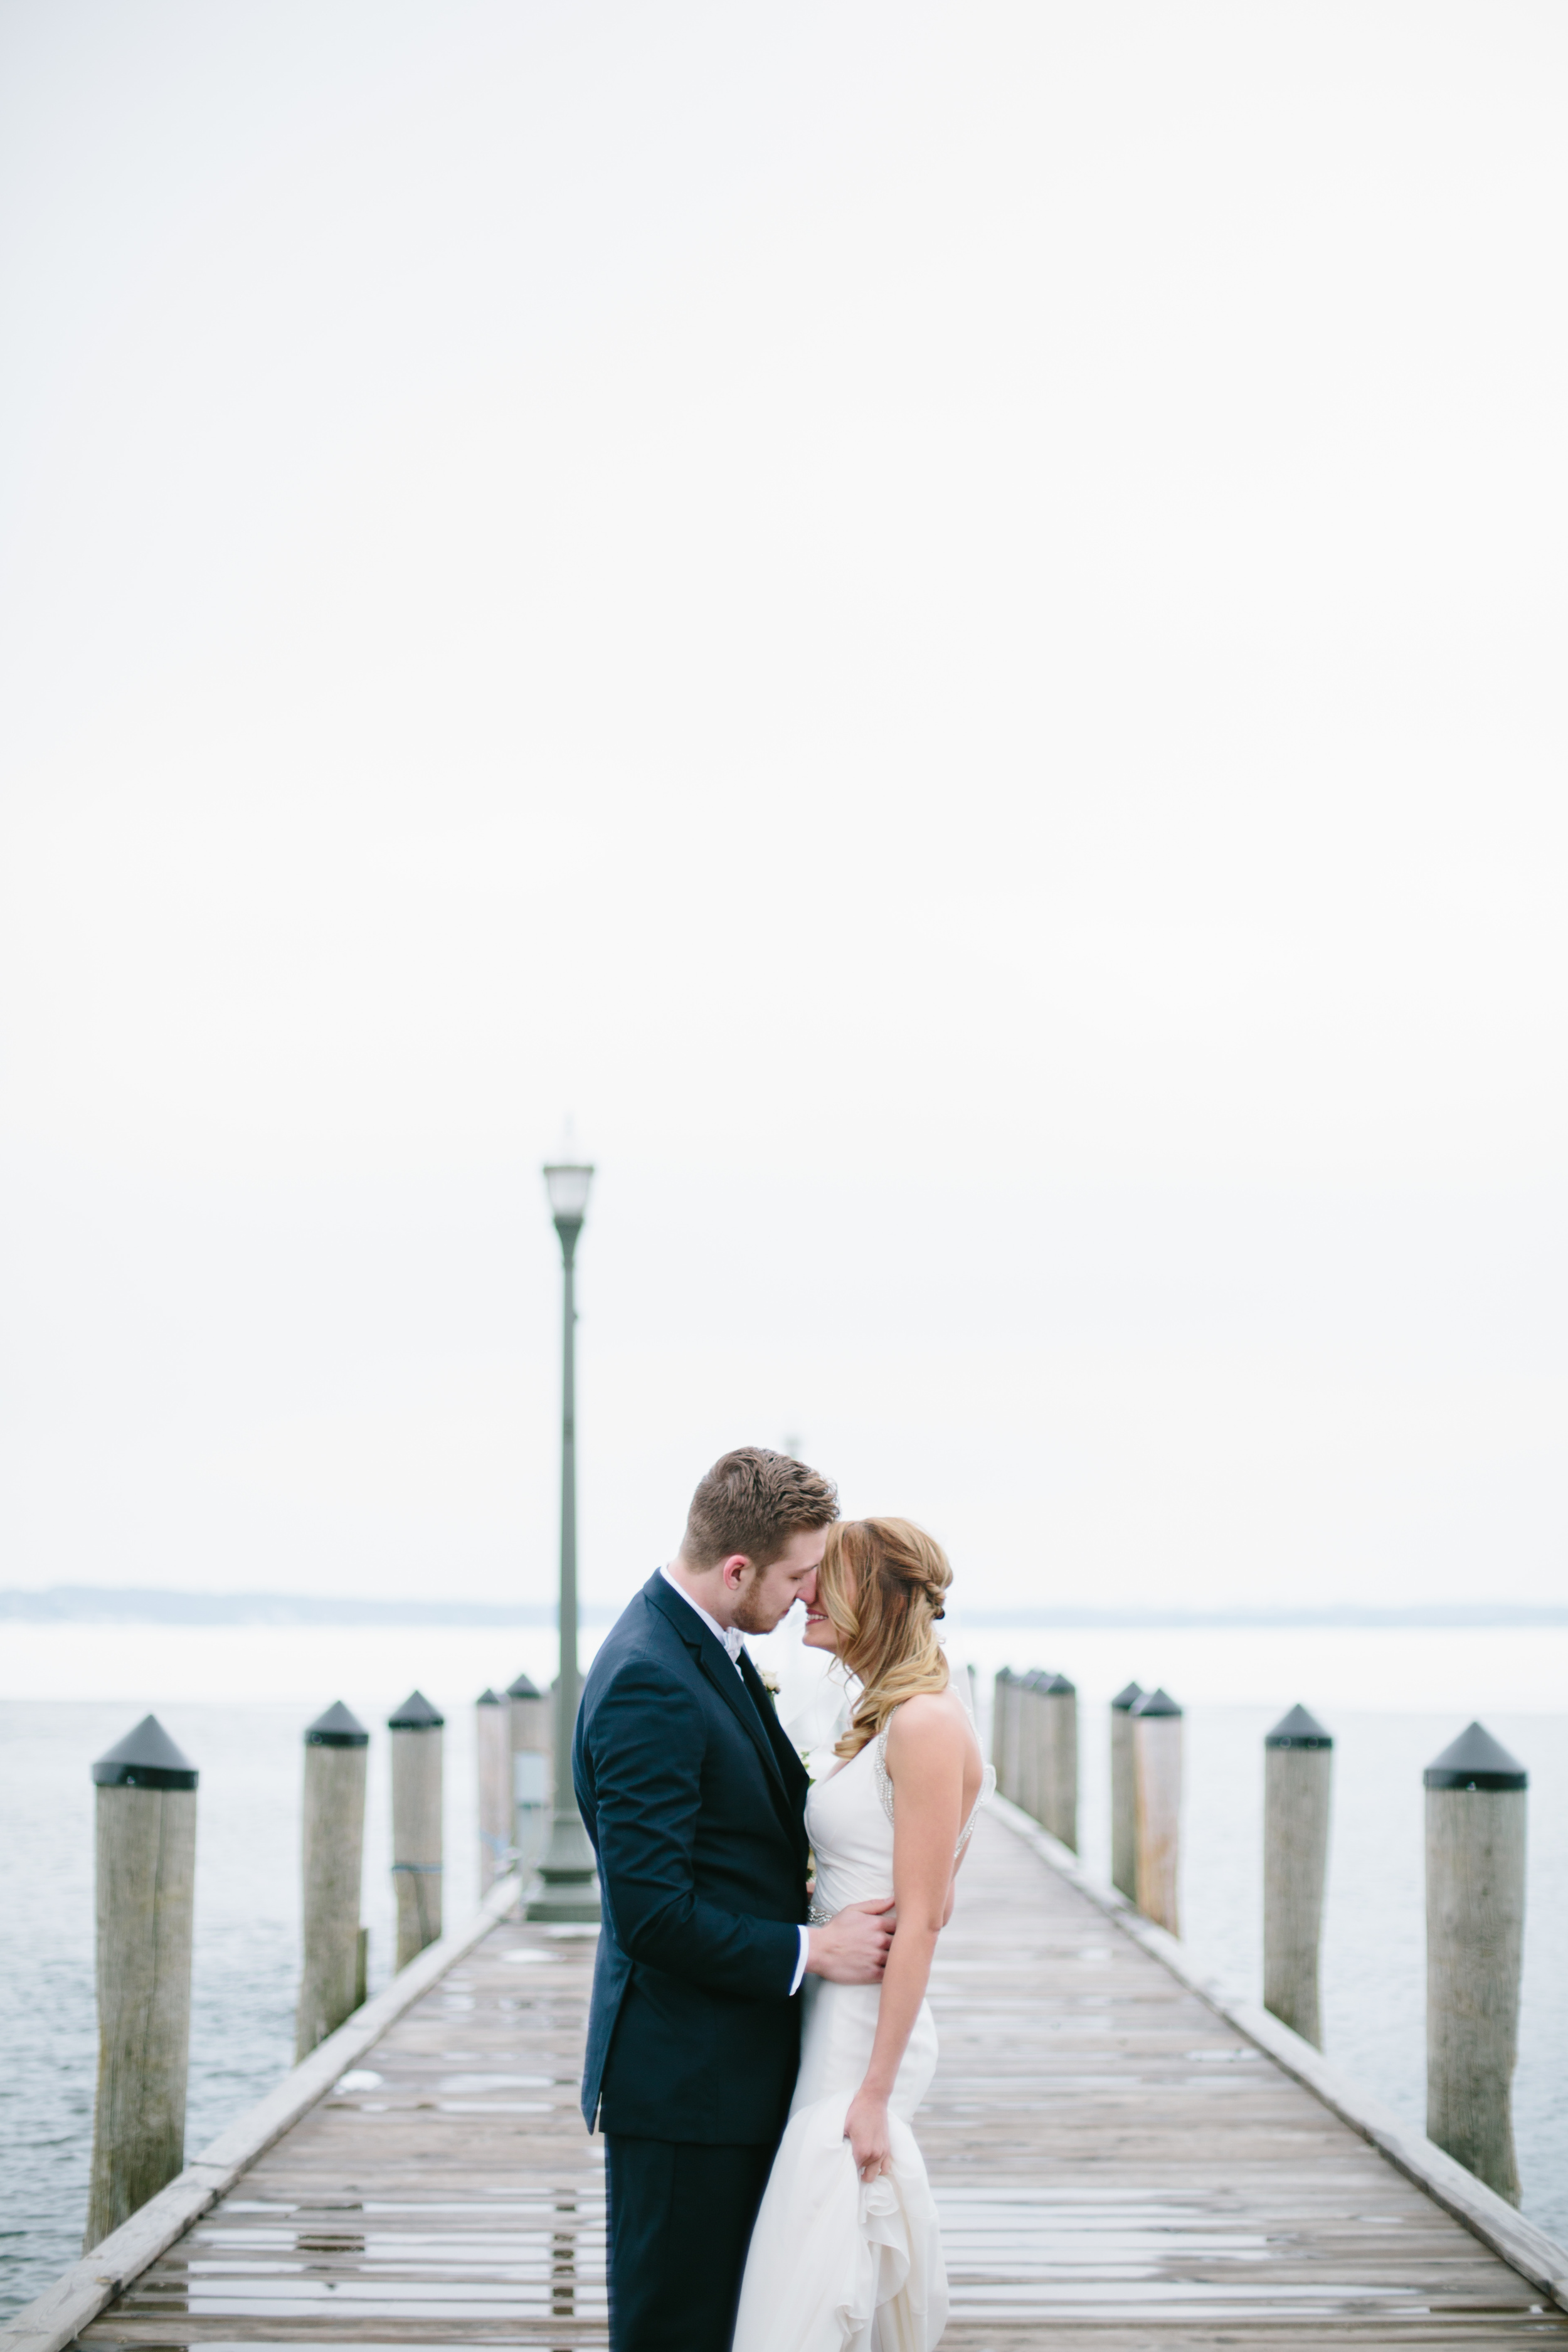 Sam and Jared_First Look (23 of 117).jpg